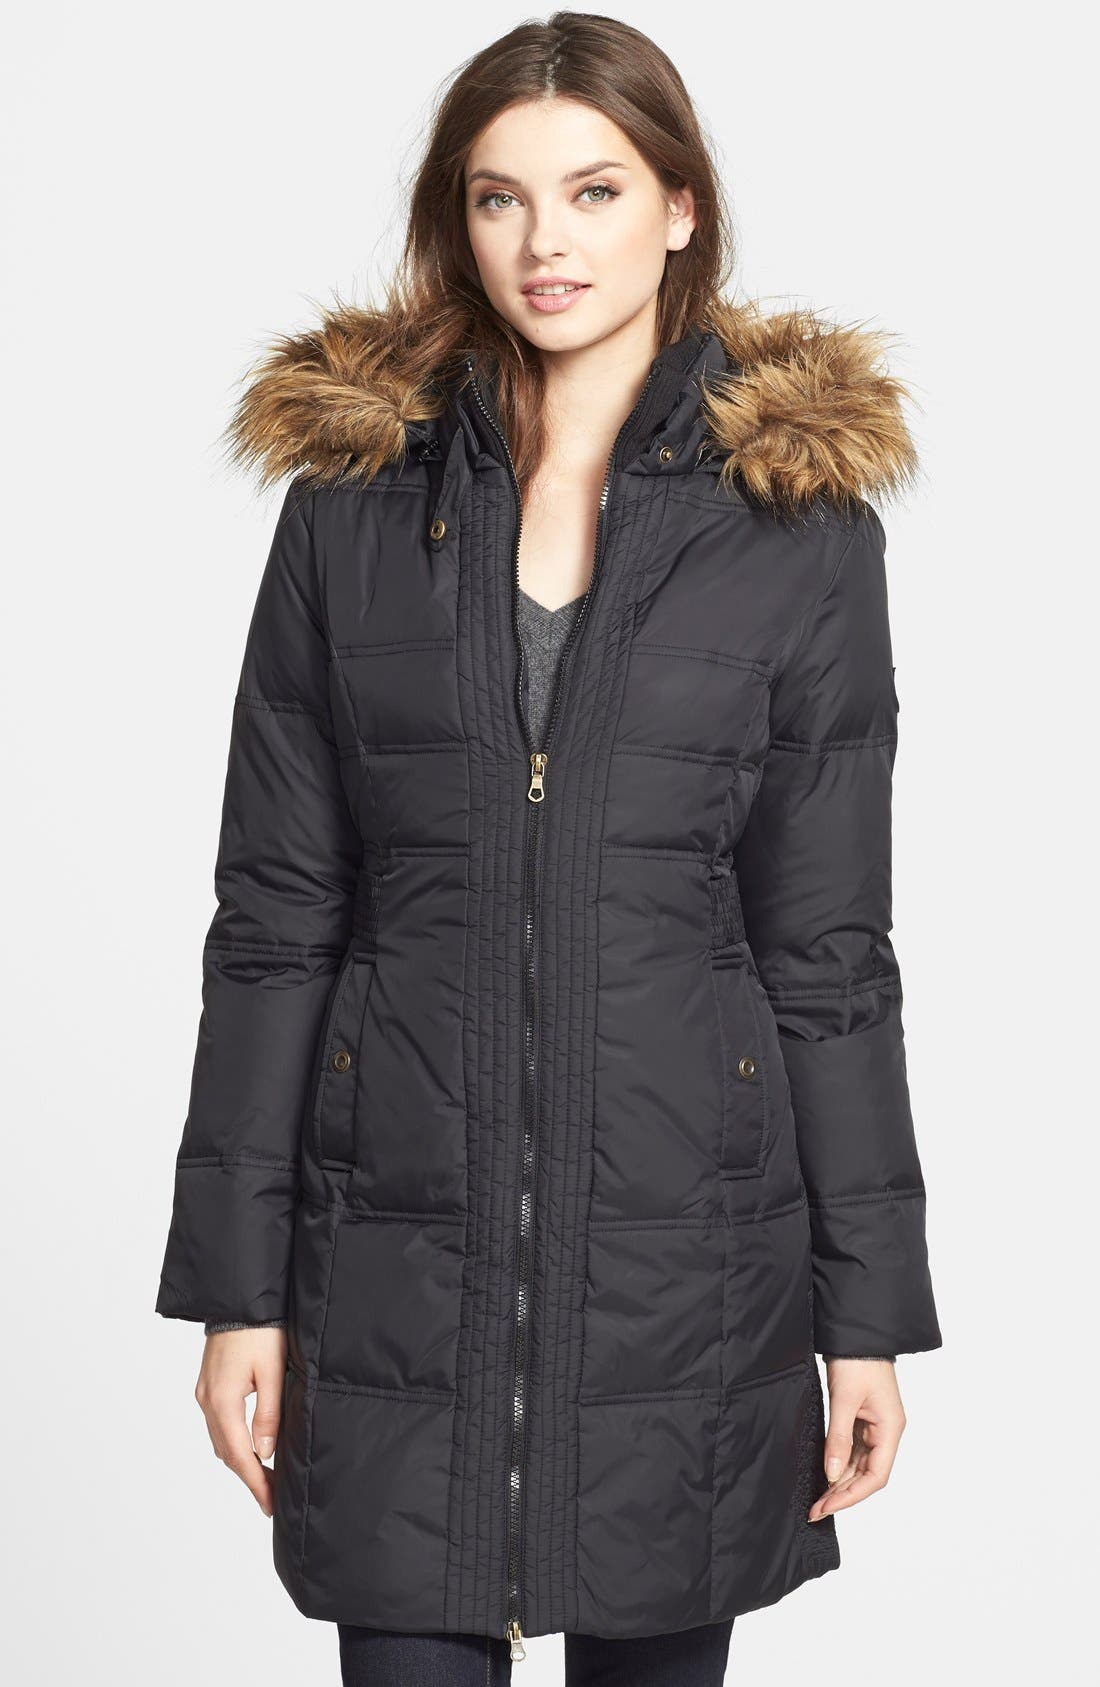 Faux Fur Trim Quilted Coat with Removable Hood,                             Main thumbnail 1, color,                             001